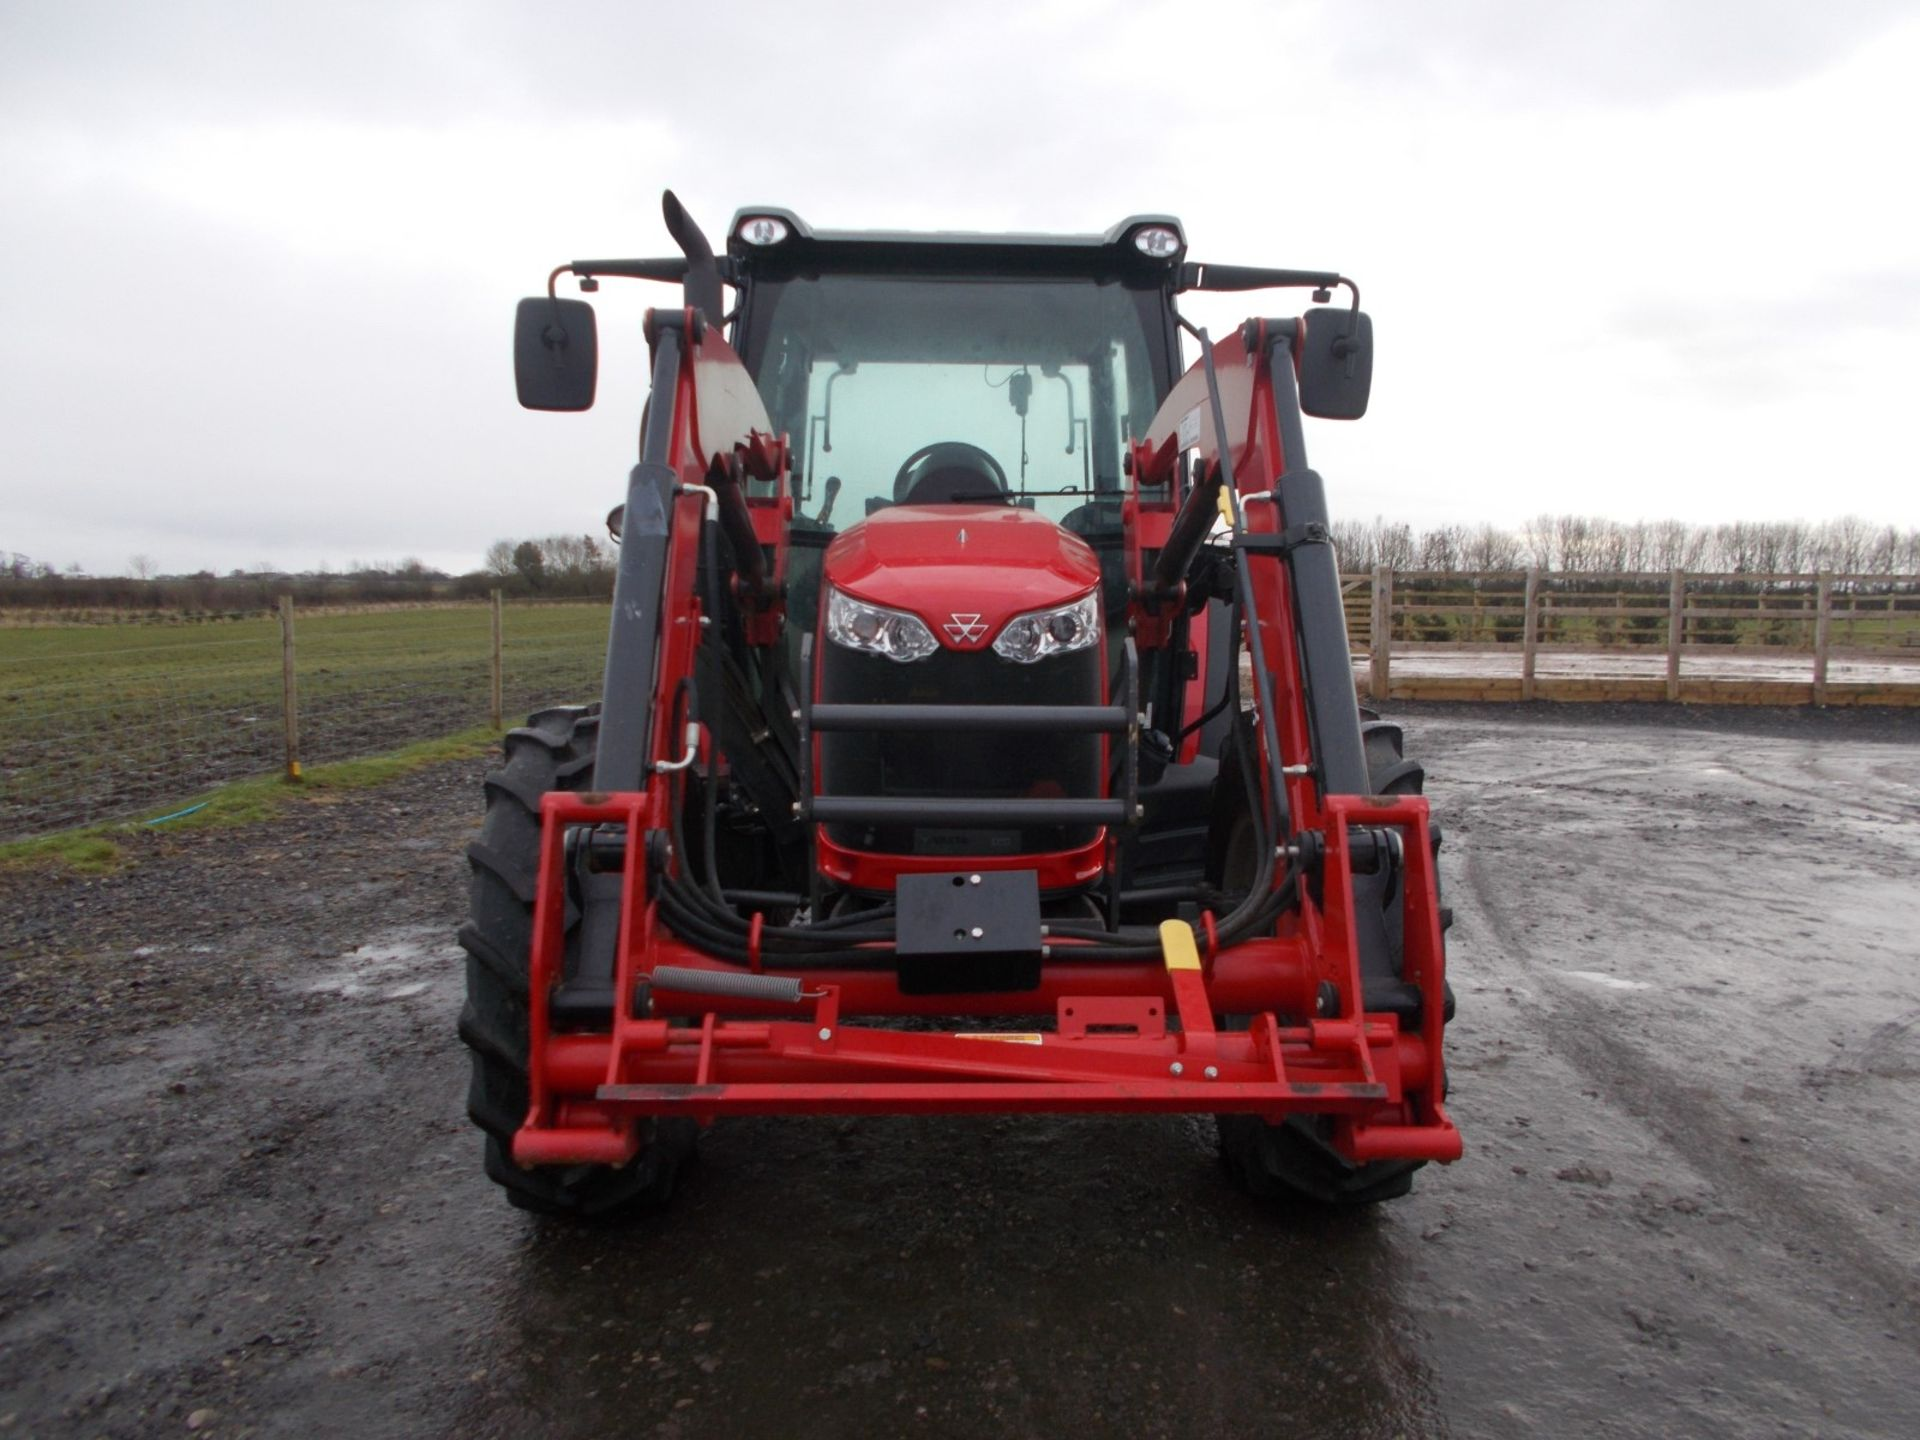 2018 MASSEY FERGUSON 4710 4WD TRACTOR WITH LOADER, AGCO 3.3 LITRE 3CYL TURBO DIESEL *PLUS VAT* - Image 3 of 21